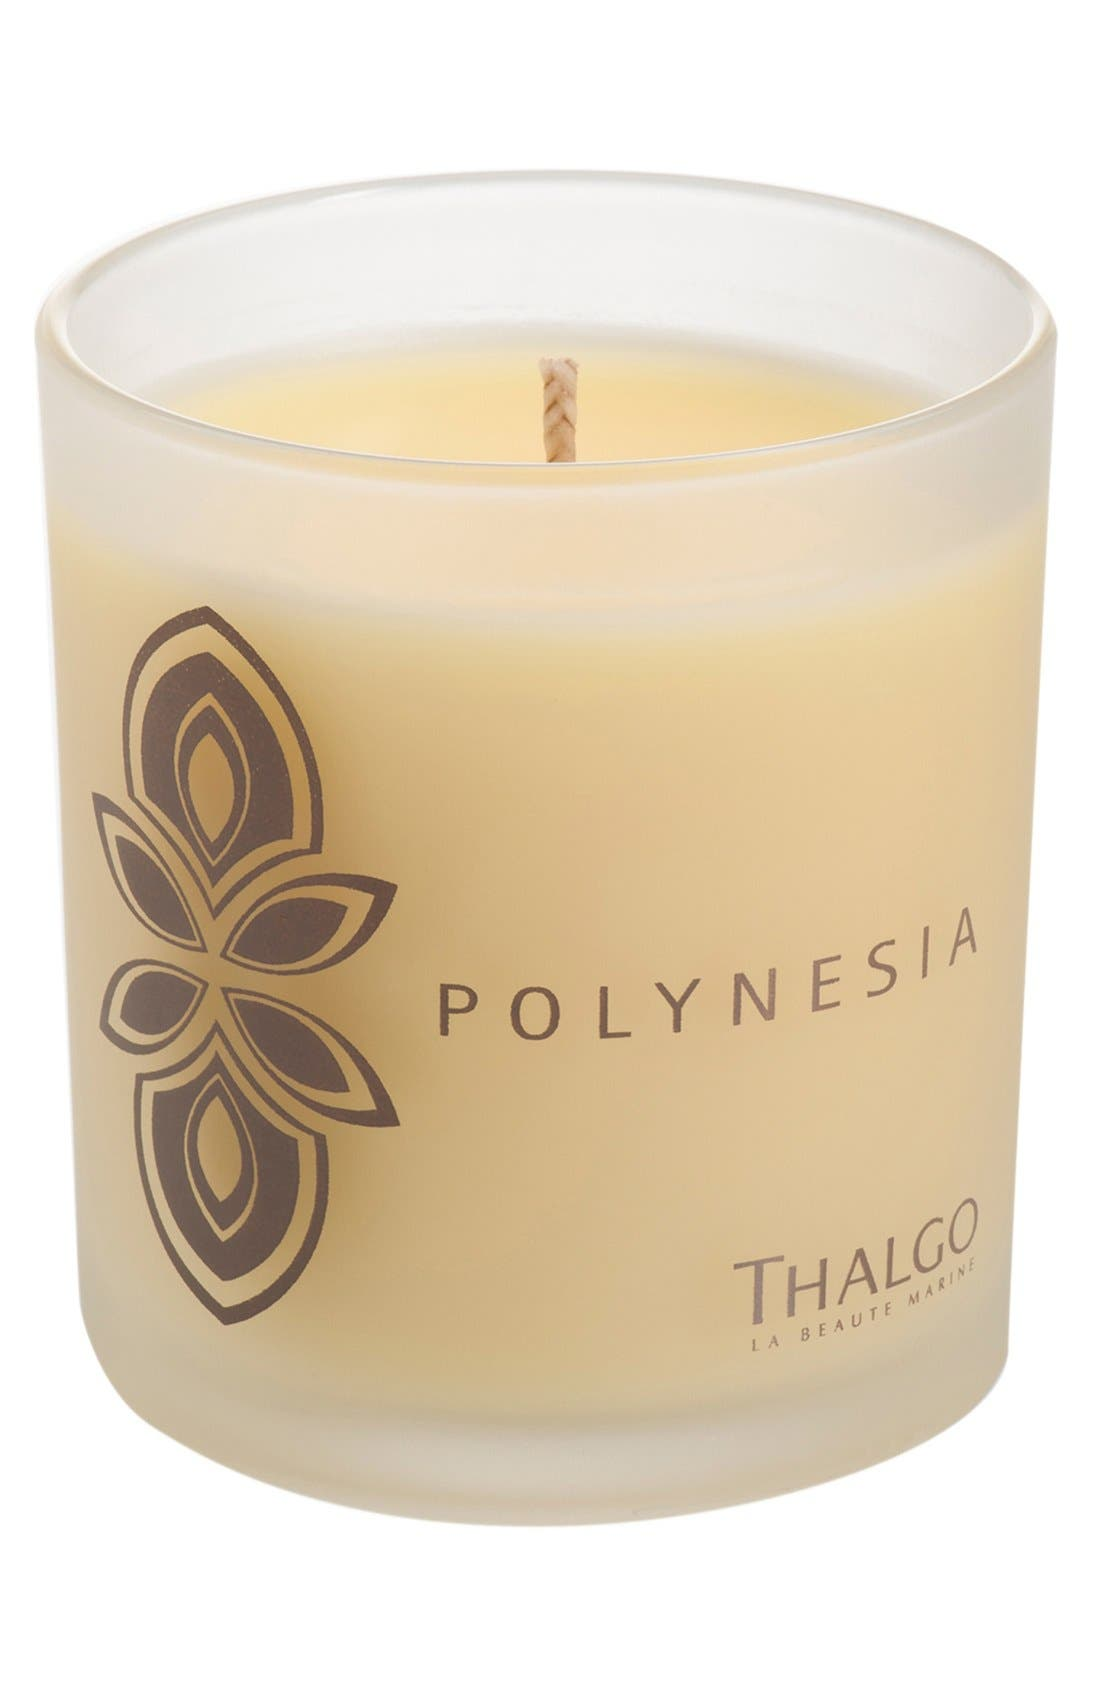 Thalgo 'Polynesia' Scented Candle